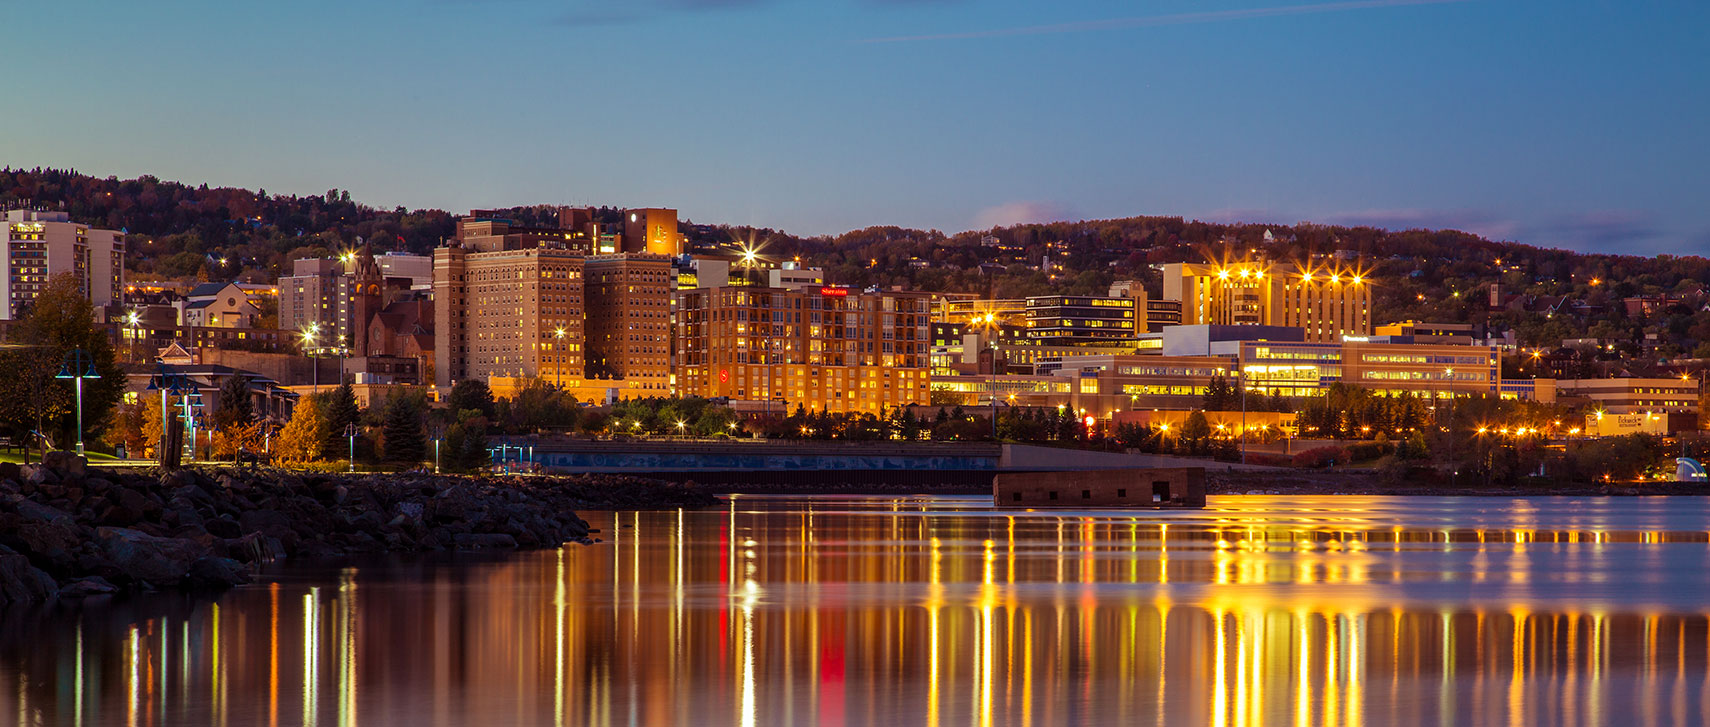 Lakefront skyline of Duluth, Minnesota